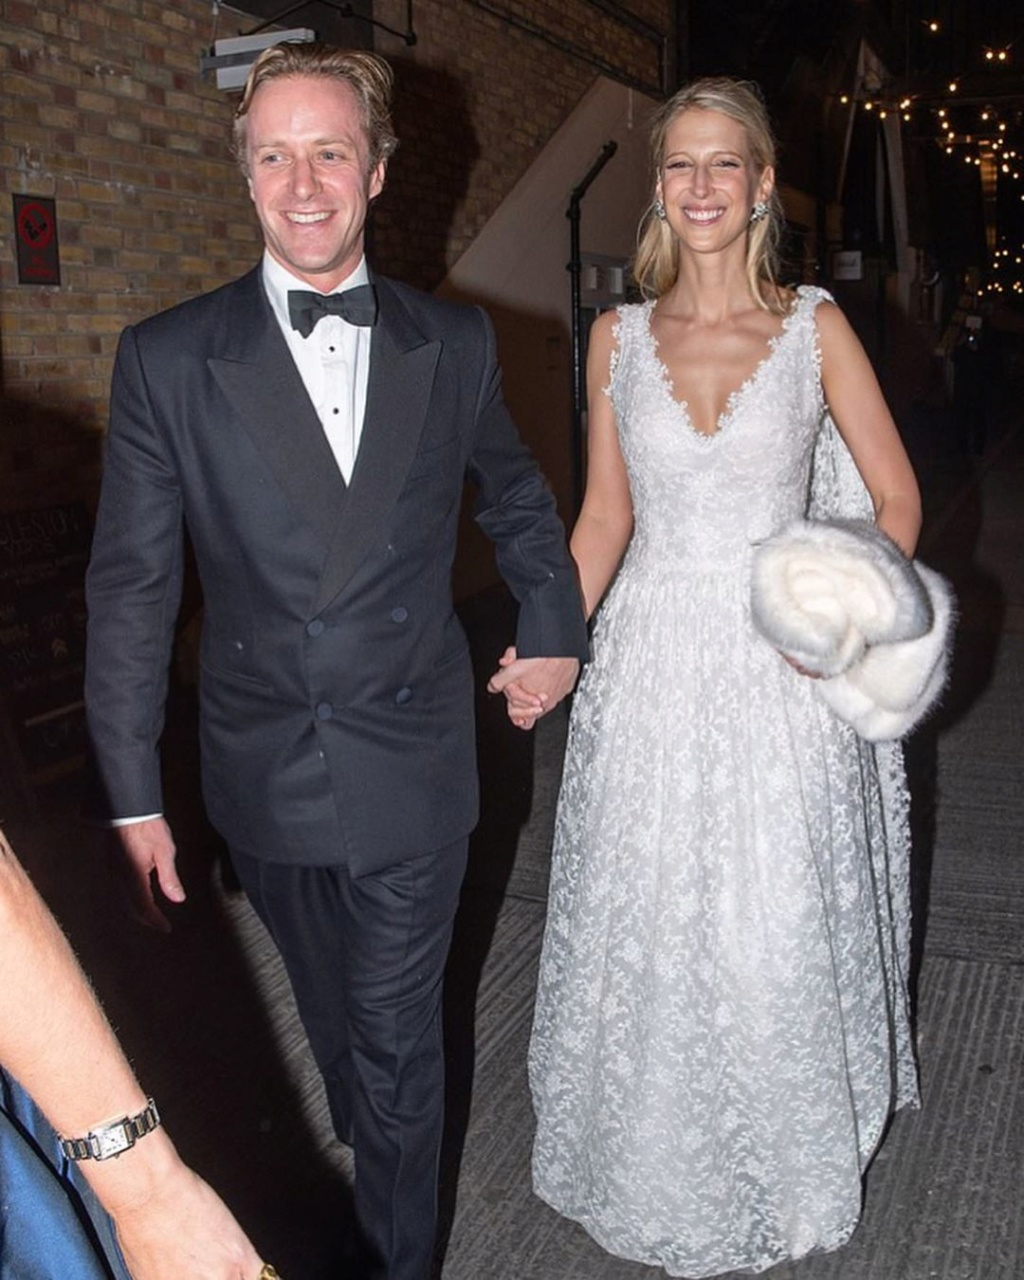 BODA DE LADY GABRIELLA WINDSOR Y THOMAS KINGSTON. EL 18/05 - Página 6 Foto1206